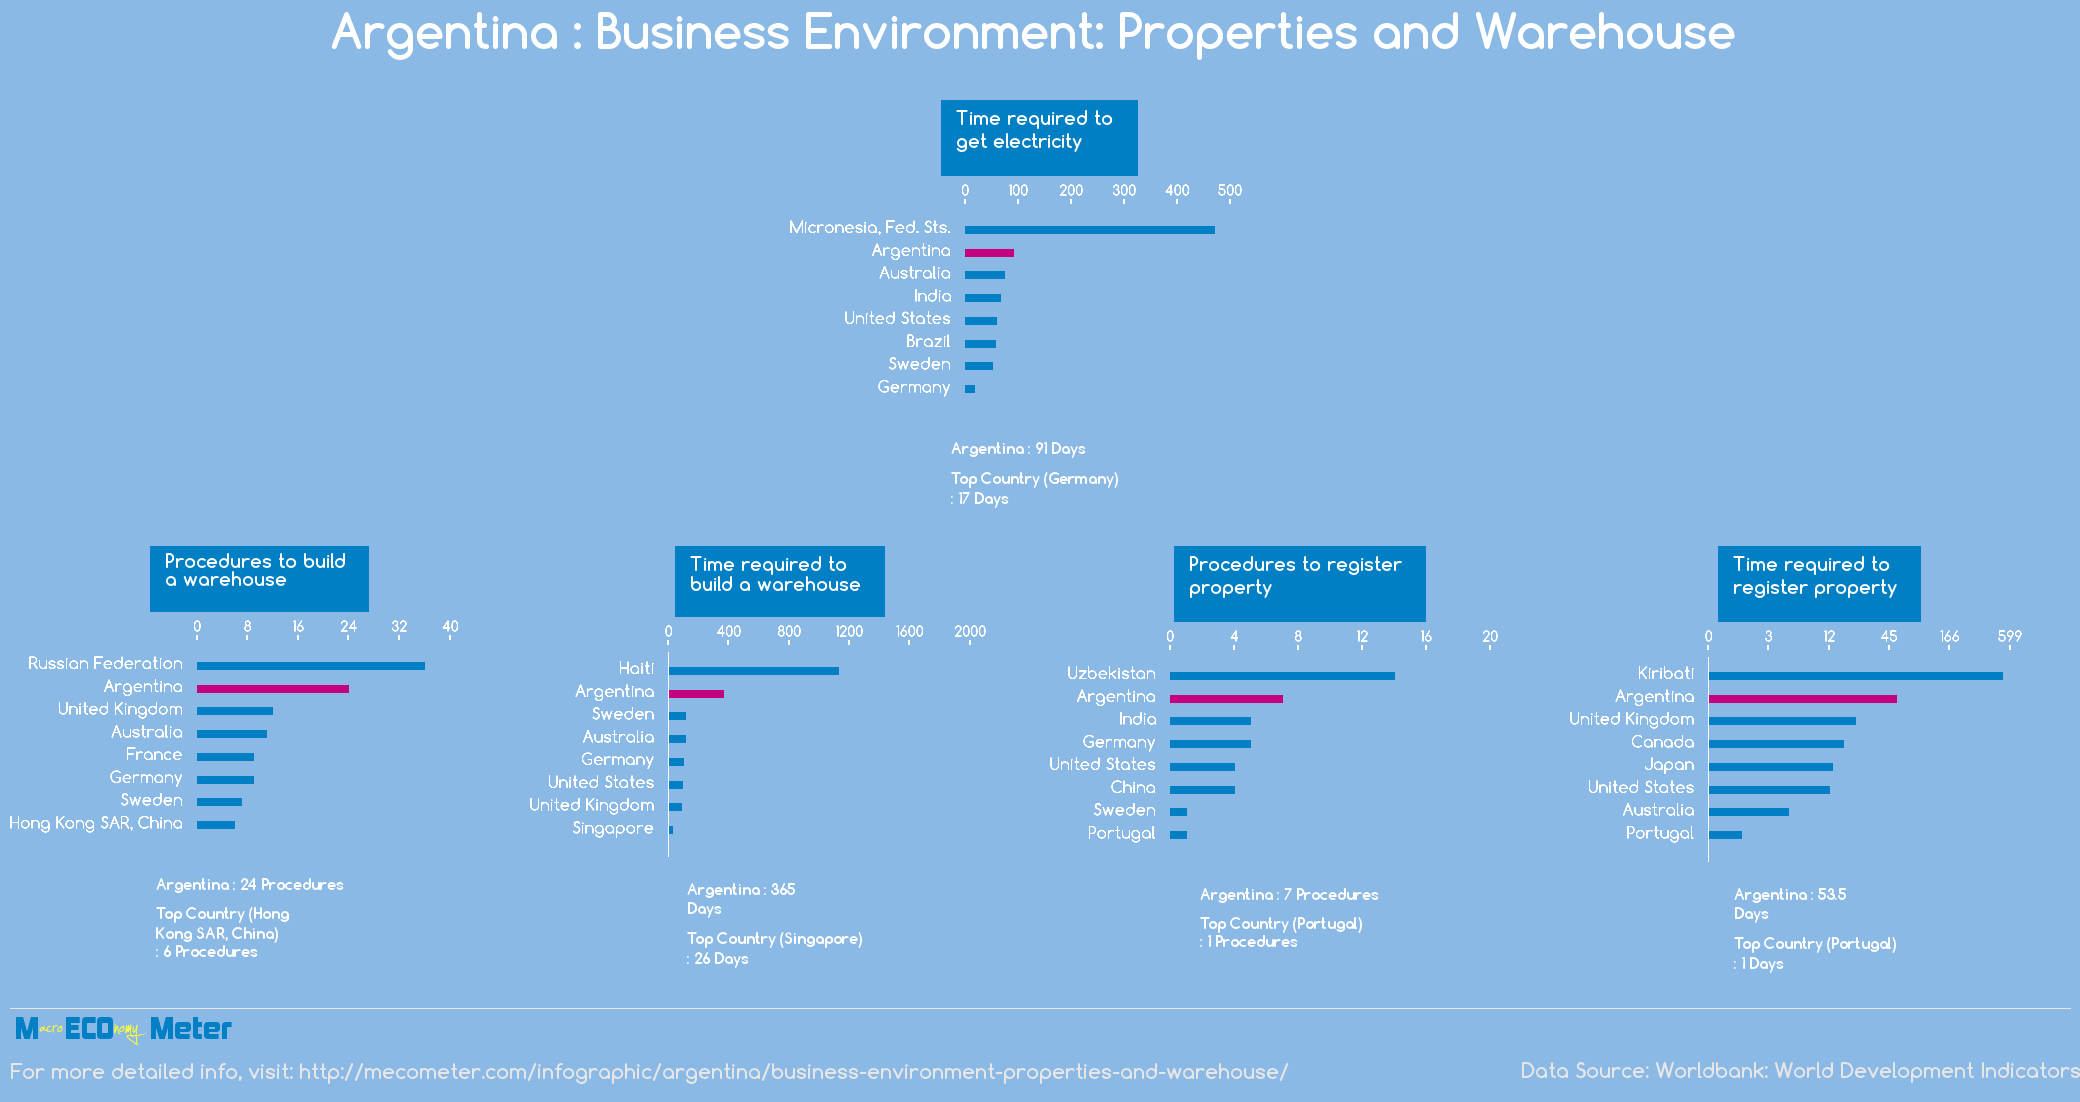 Argentina : Business Environment: Properties and Warehouse